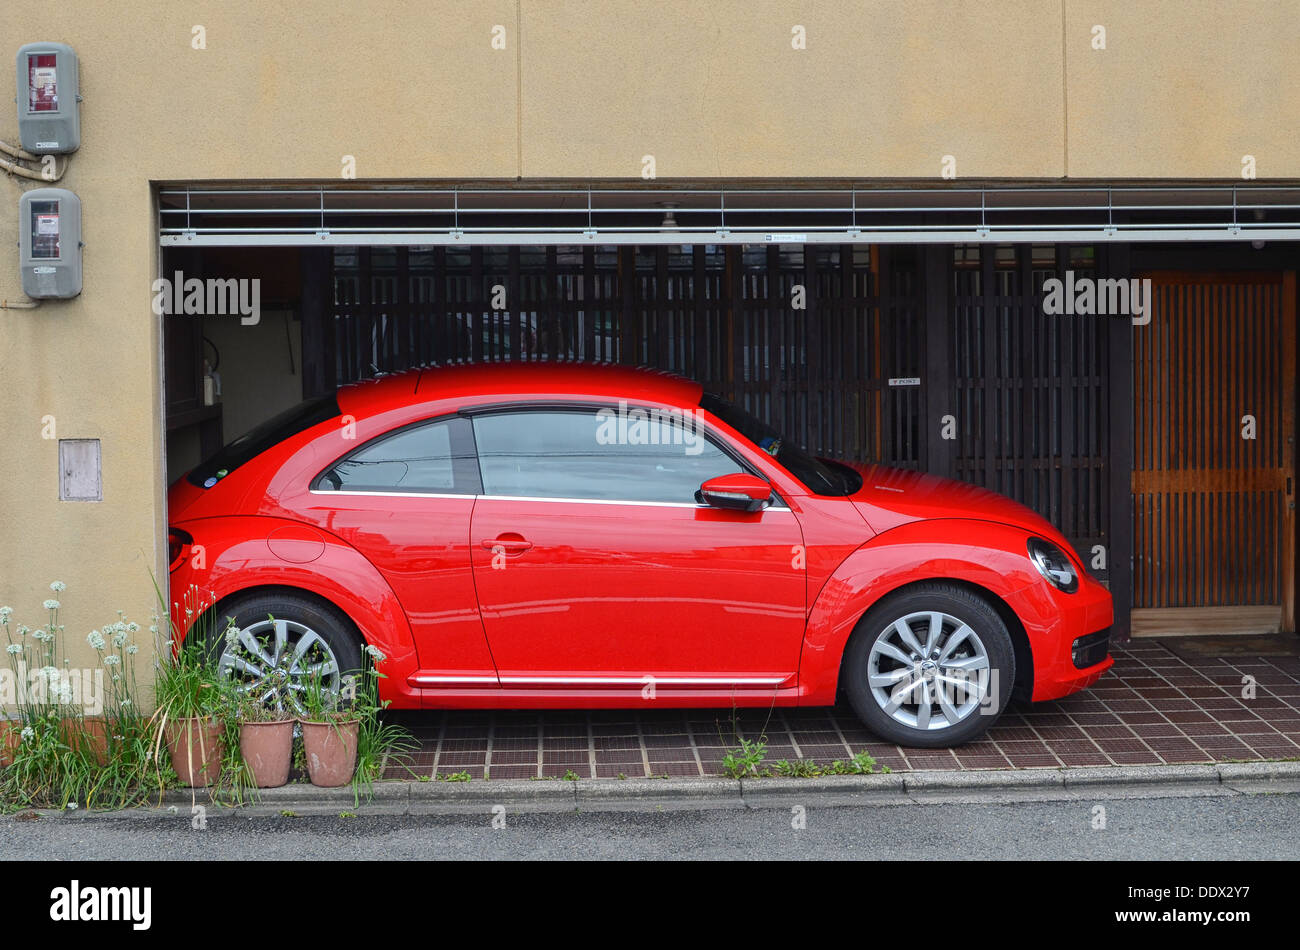 A bright red VW Beetle. - Stock Image